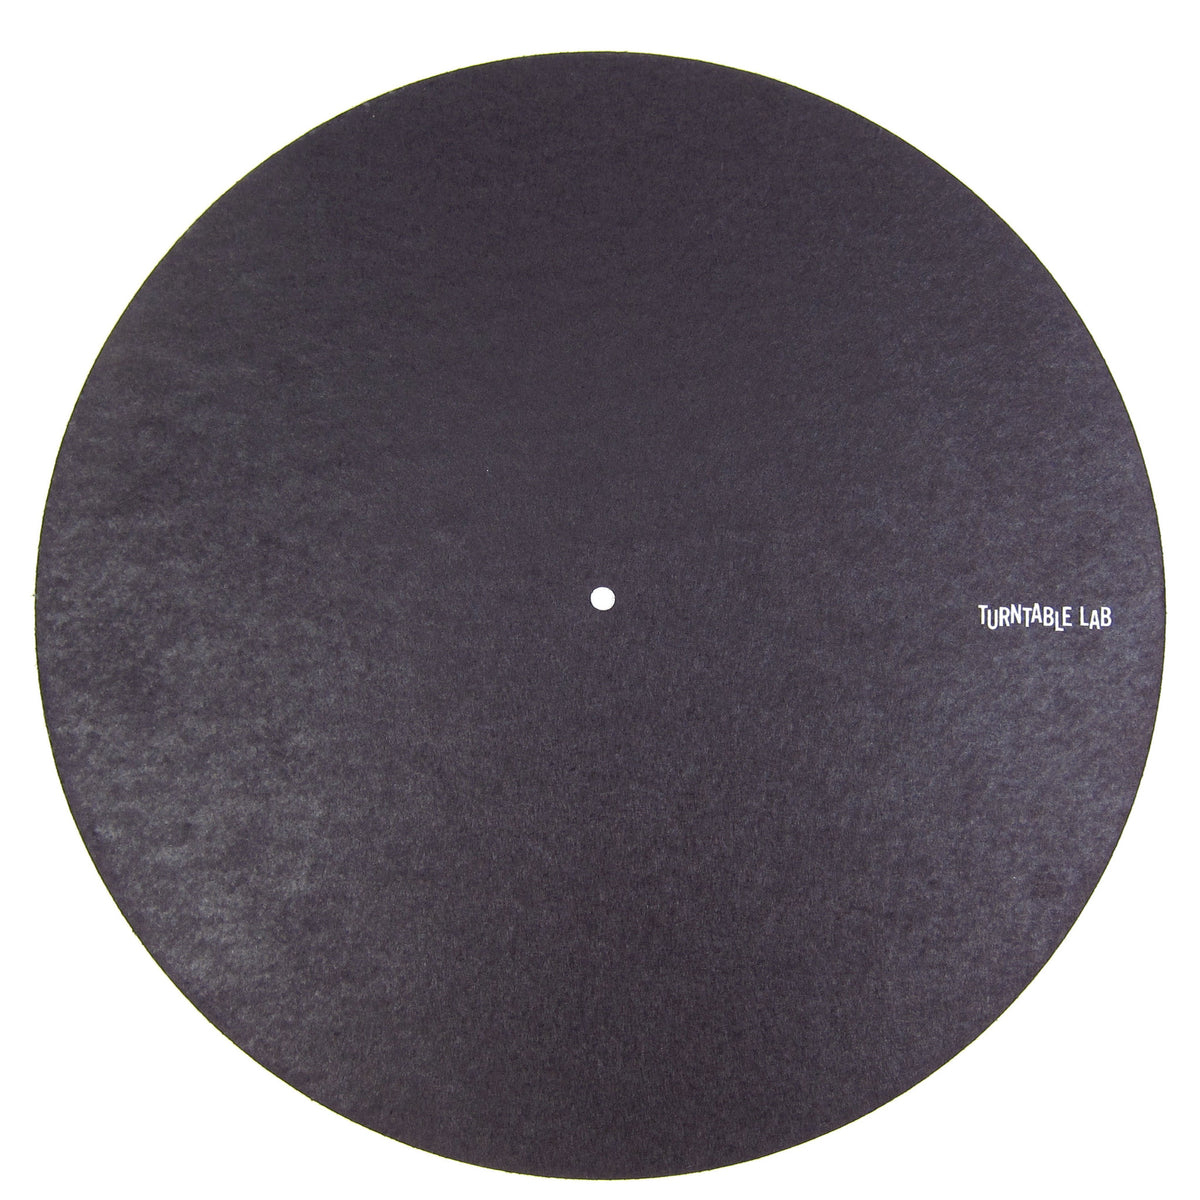 Turntable Lab: Audiosetup Slipmats Various single black